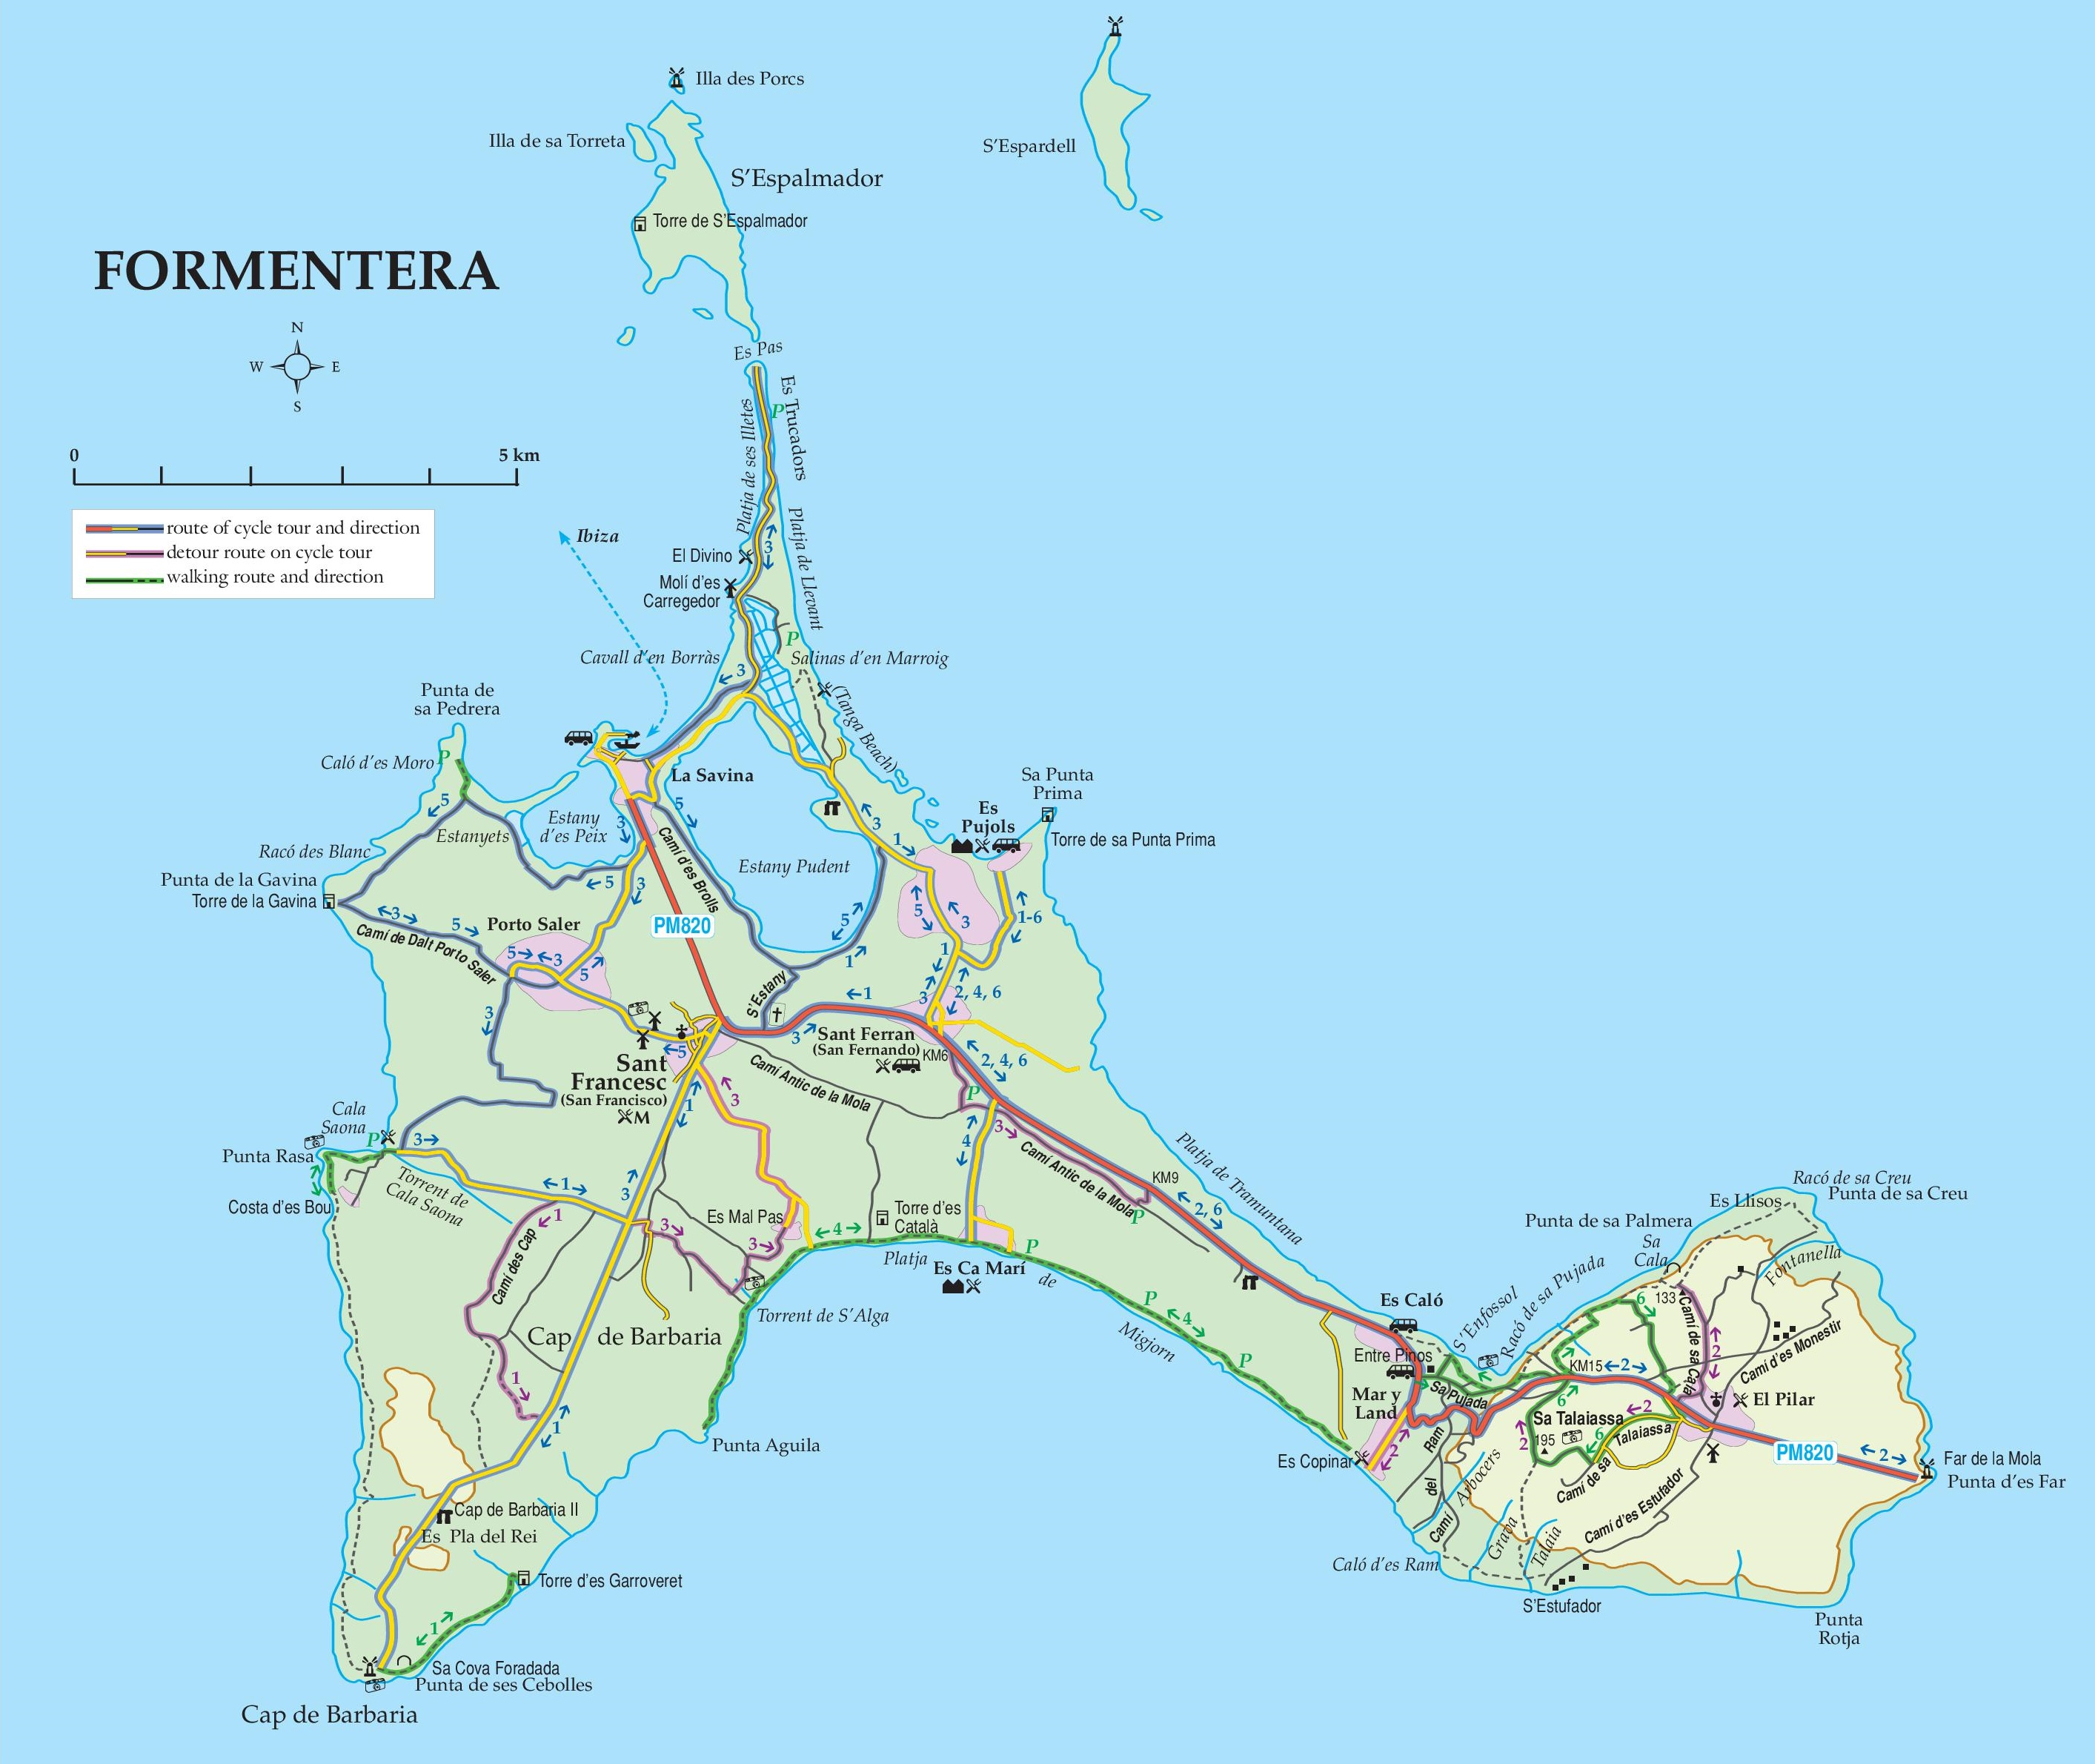 Formentera Maps Balearic Islands Spain Map of Formentera